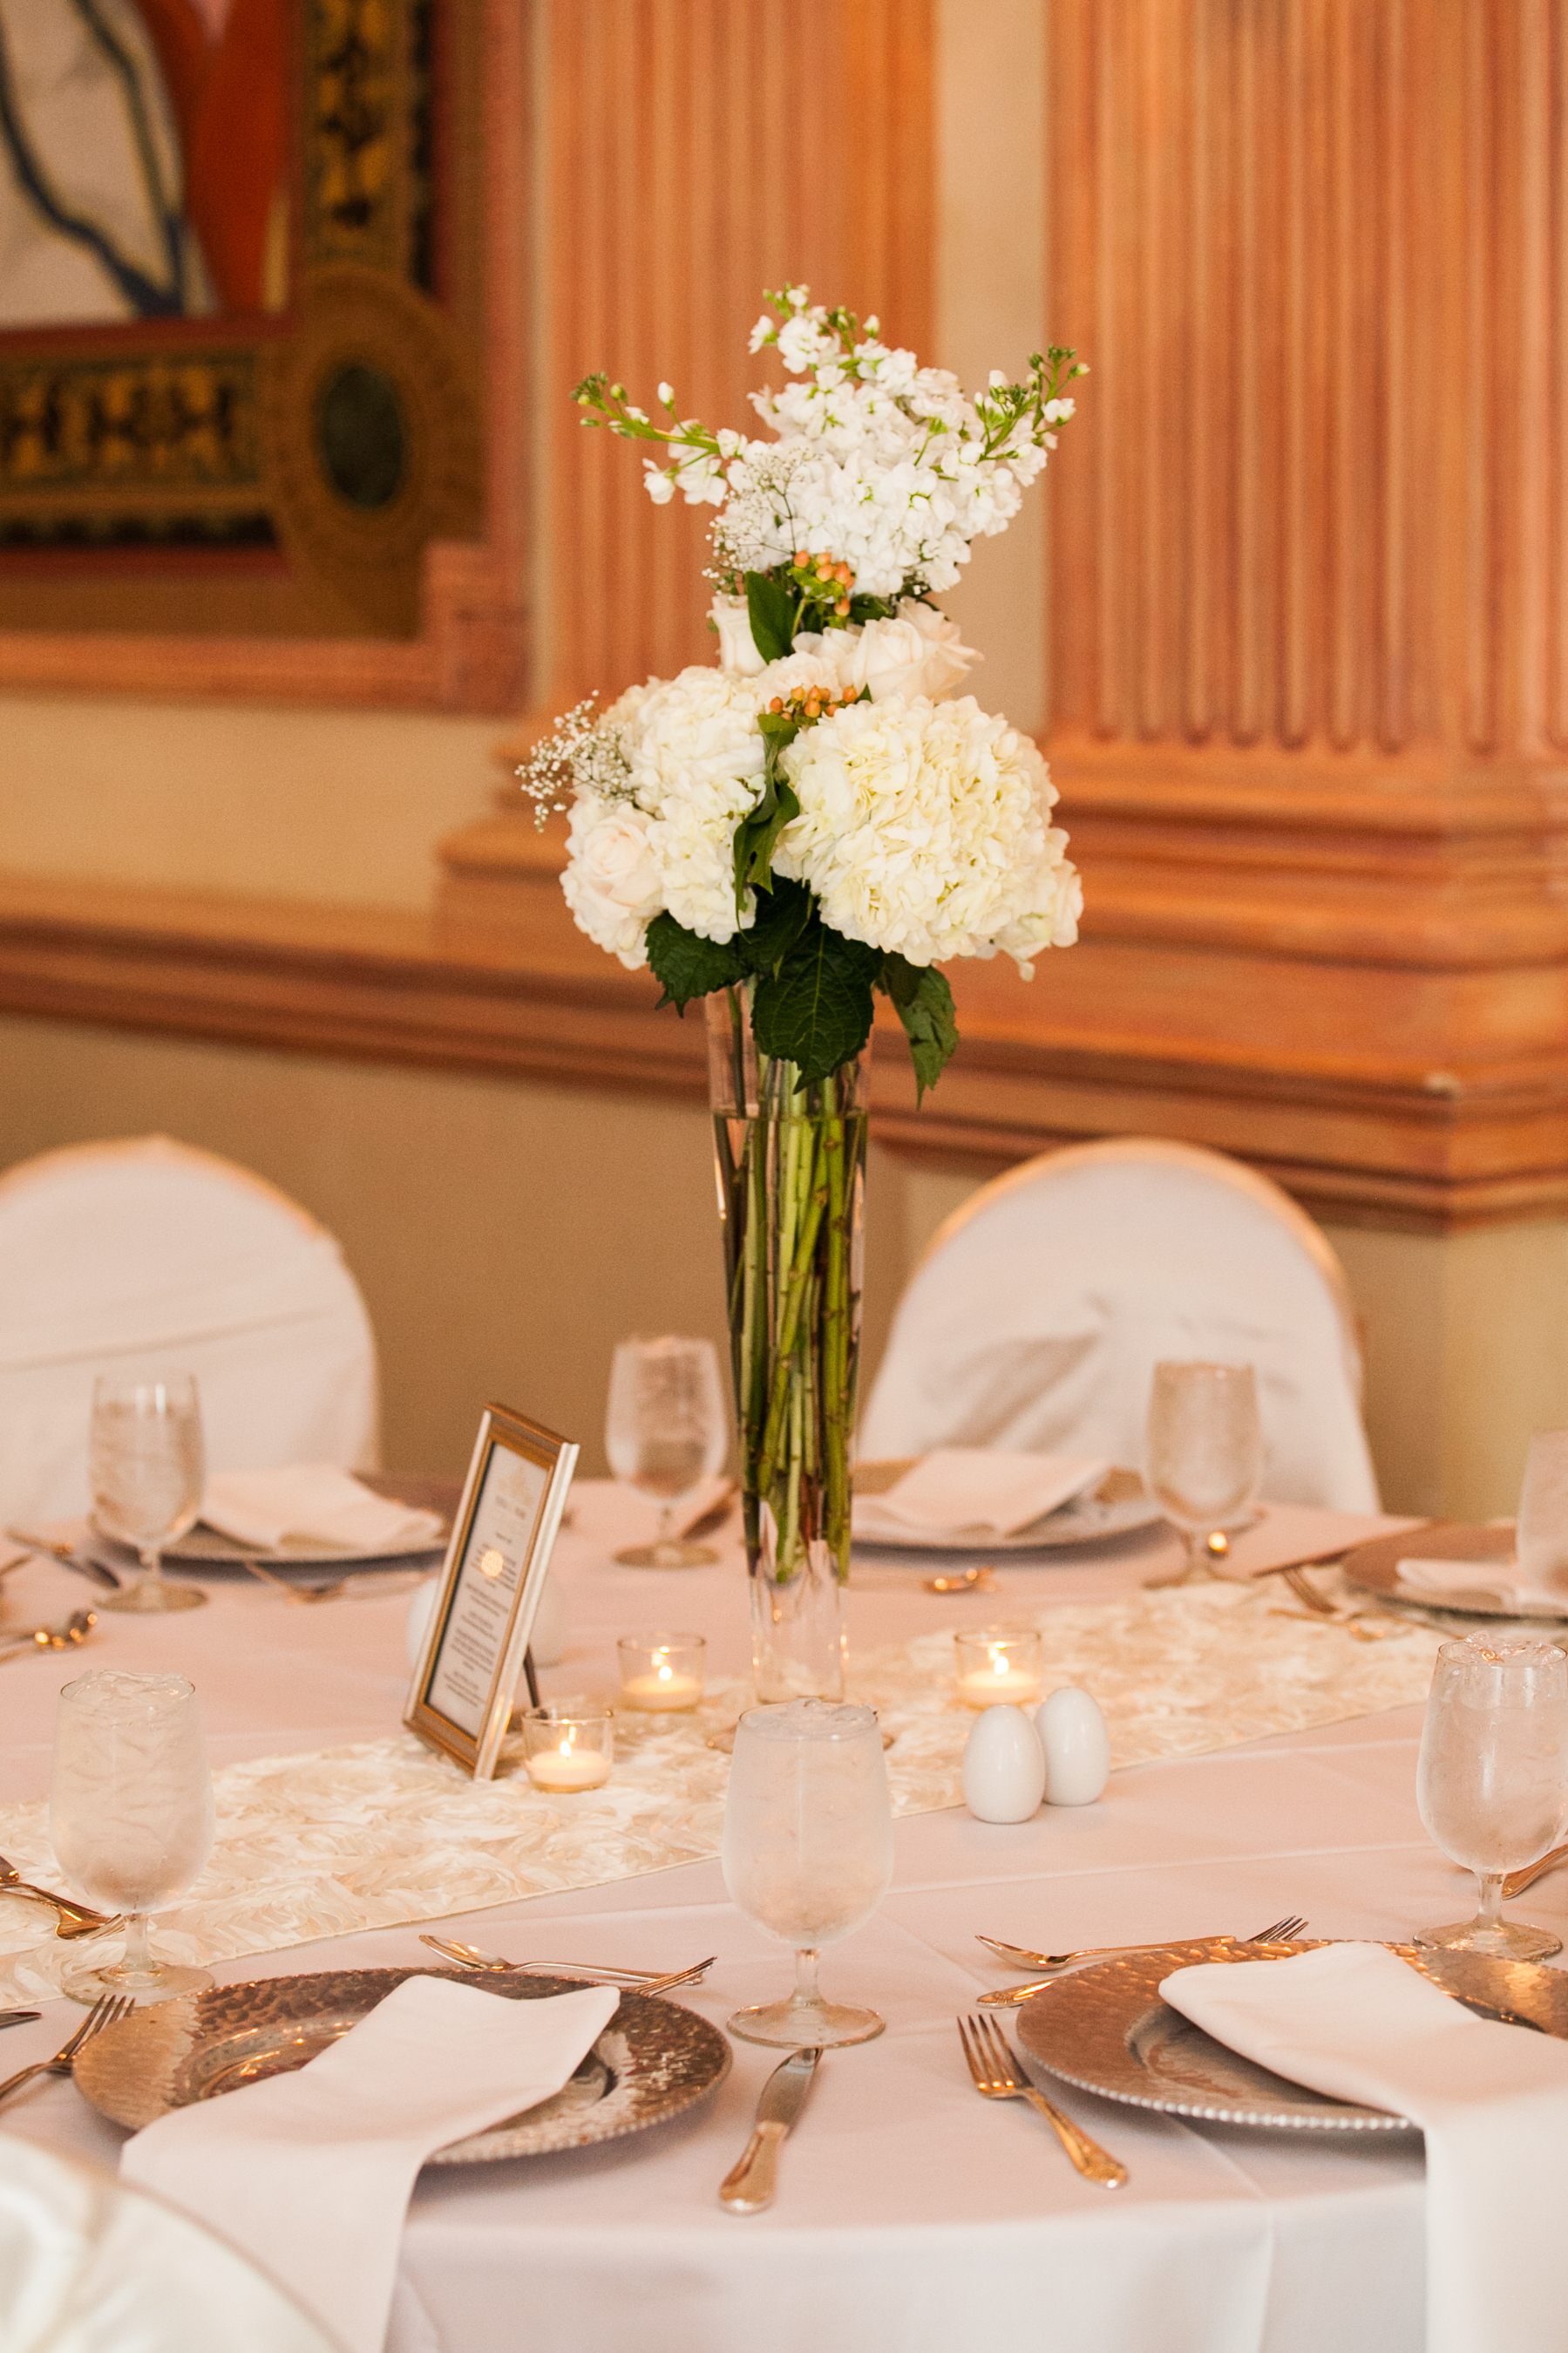 Ivory Satin Banquet Chair Covers For Sale $145 — The Knot